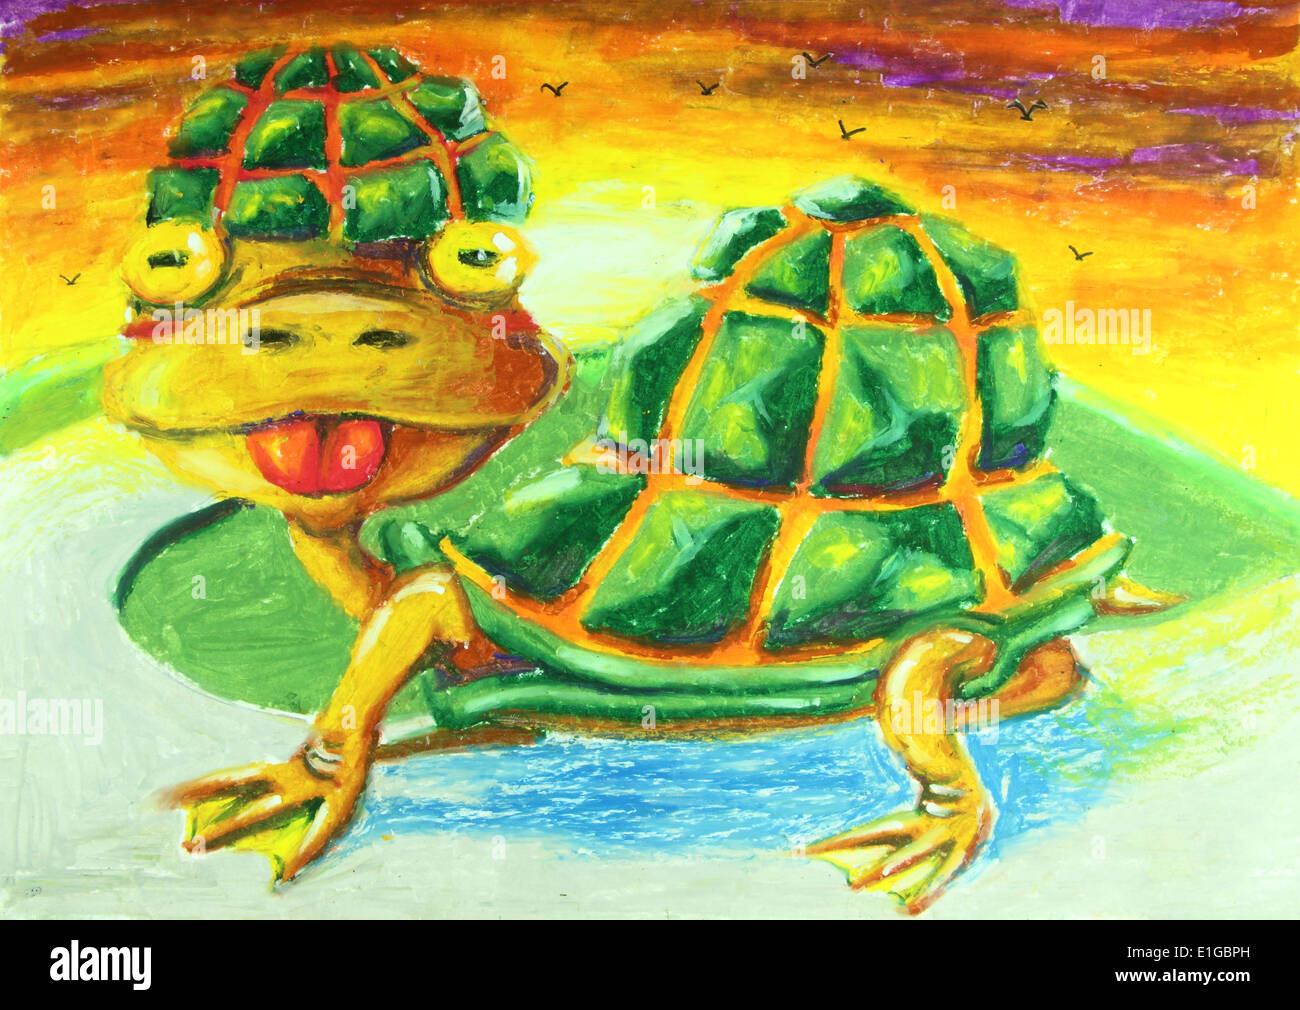 Turtle With Tongue Out Painting Background